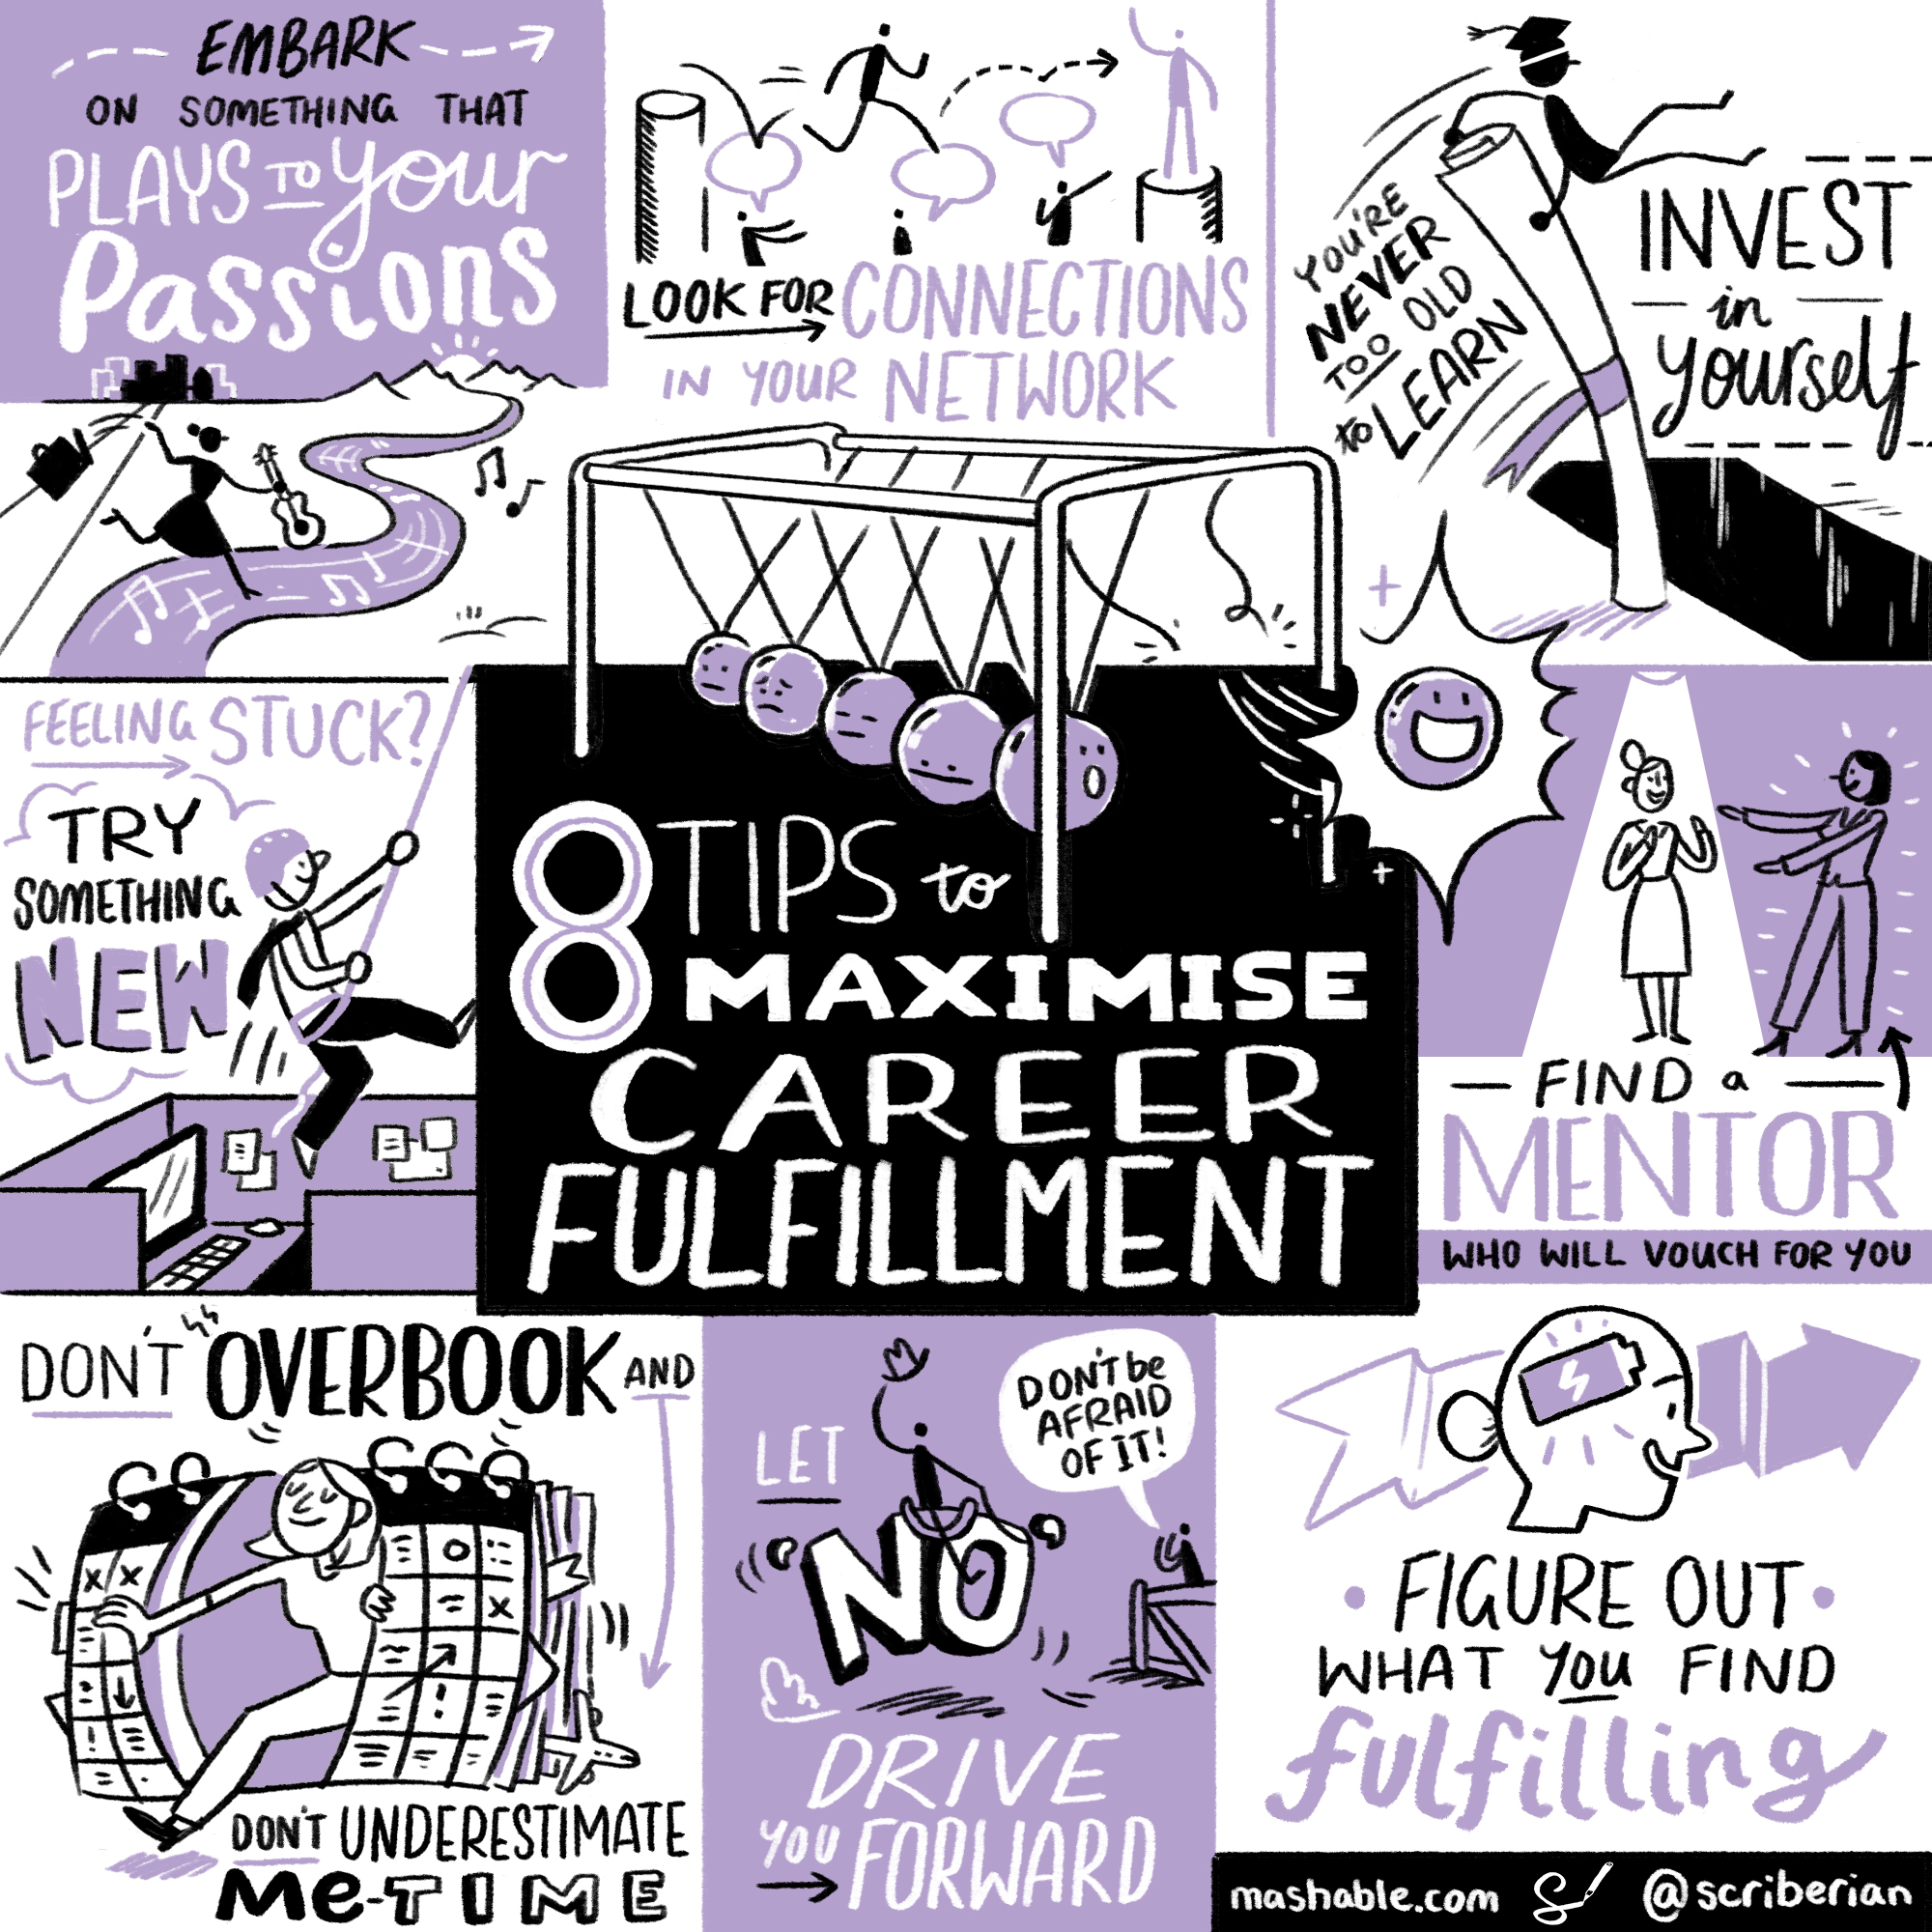 8 simple tips to maximise career fulfillment, by Gloria Pitagorsky. Source:  Mashable